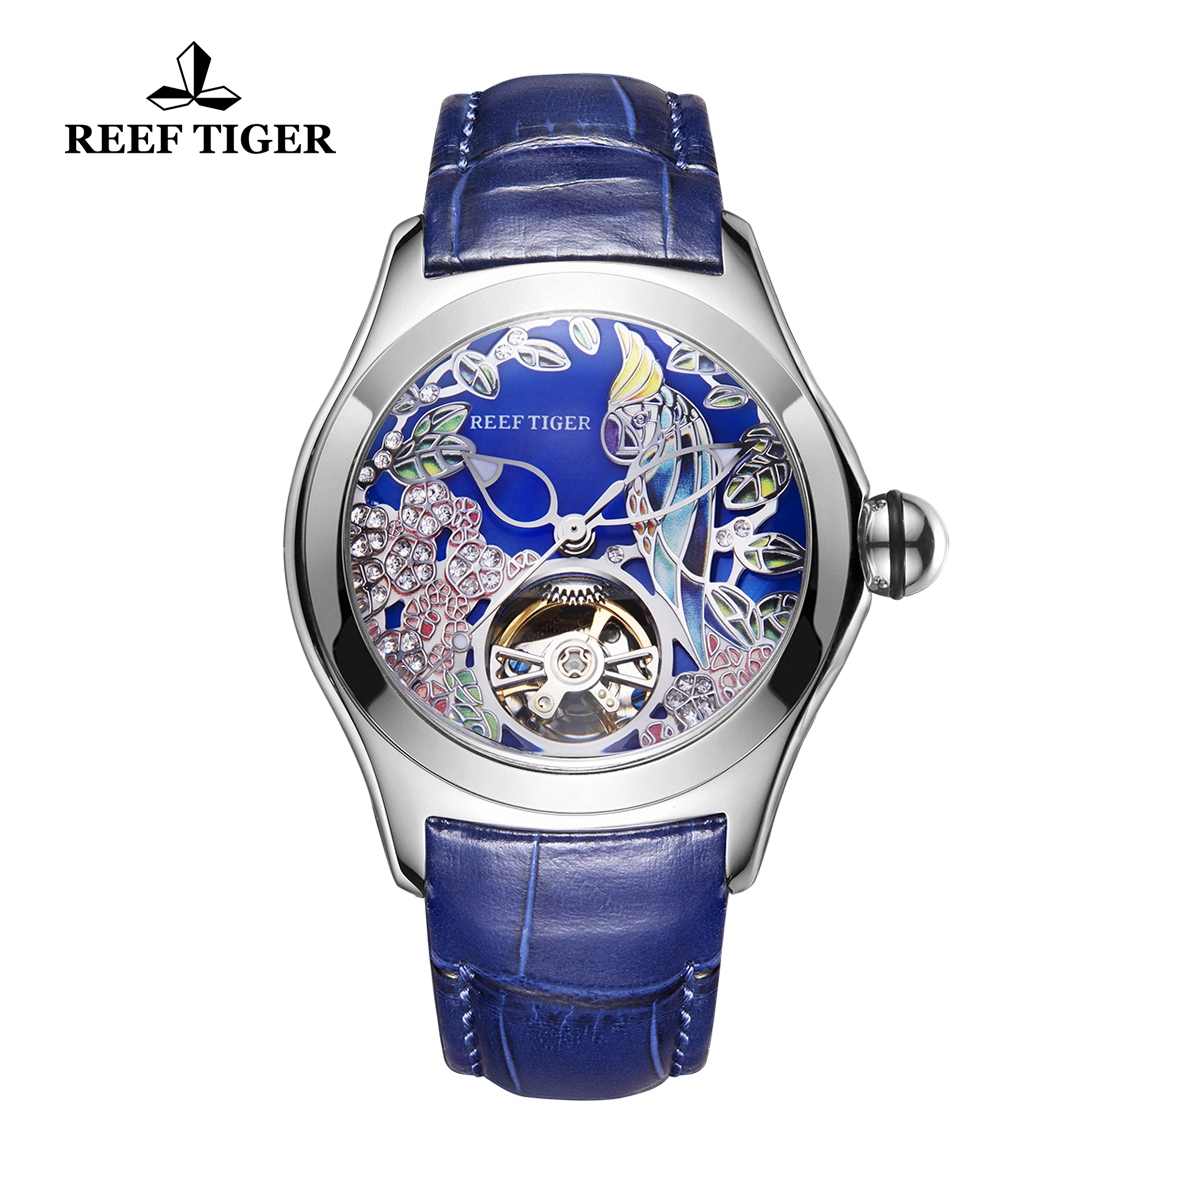 Reef Tiger Aurora Parrot Casual Watches Automatic Watch Steel Case Leather Strap RGA7105-YLL